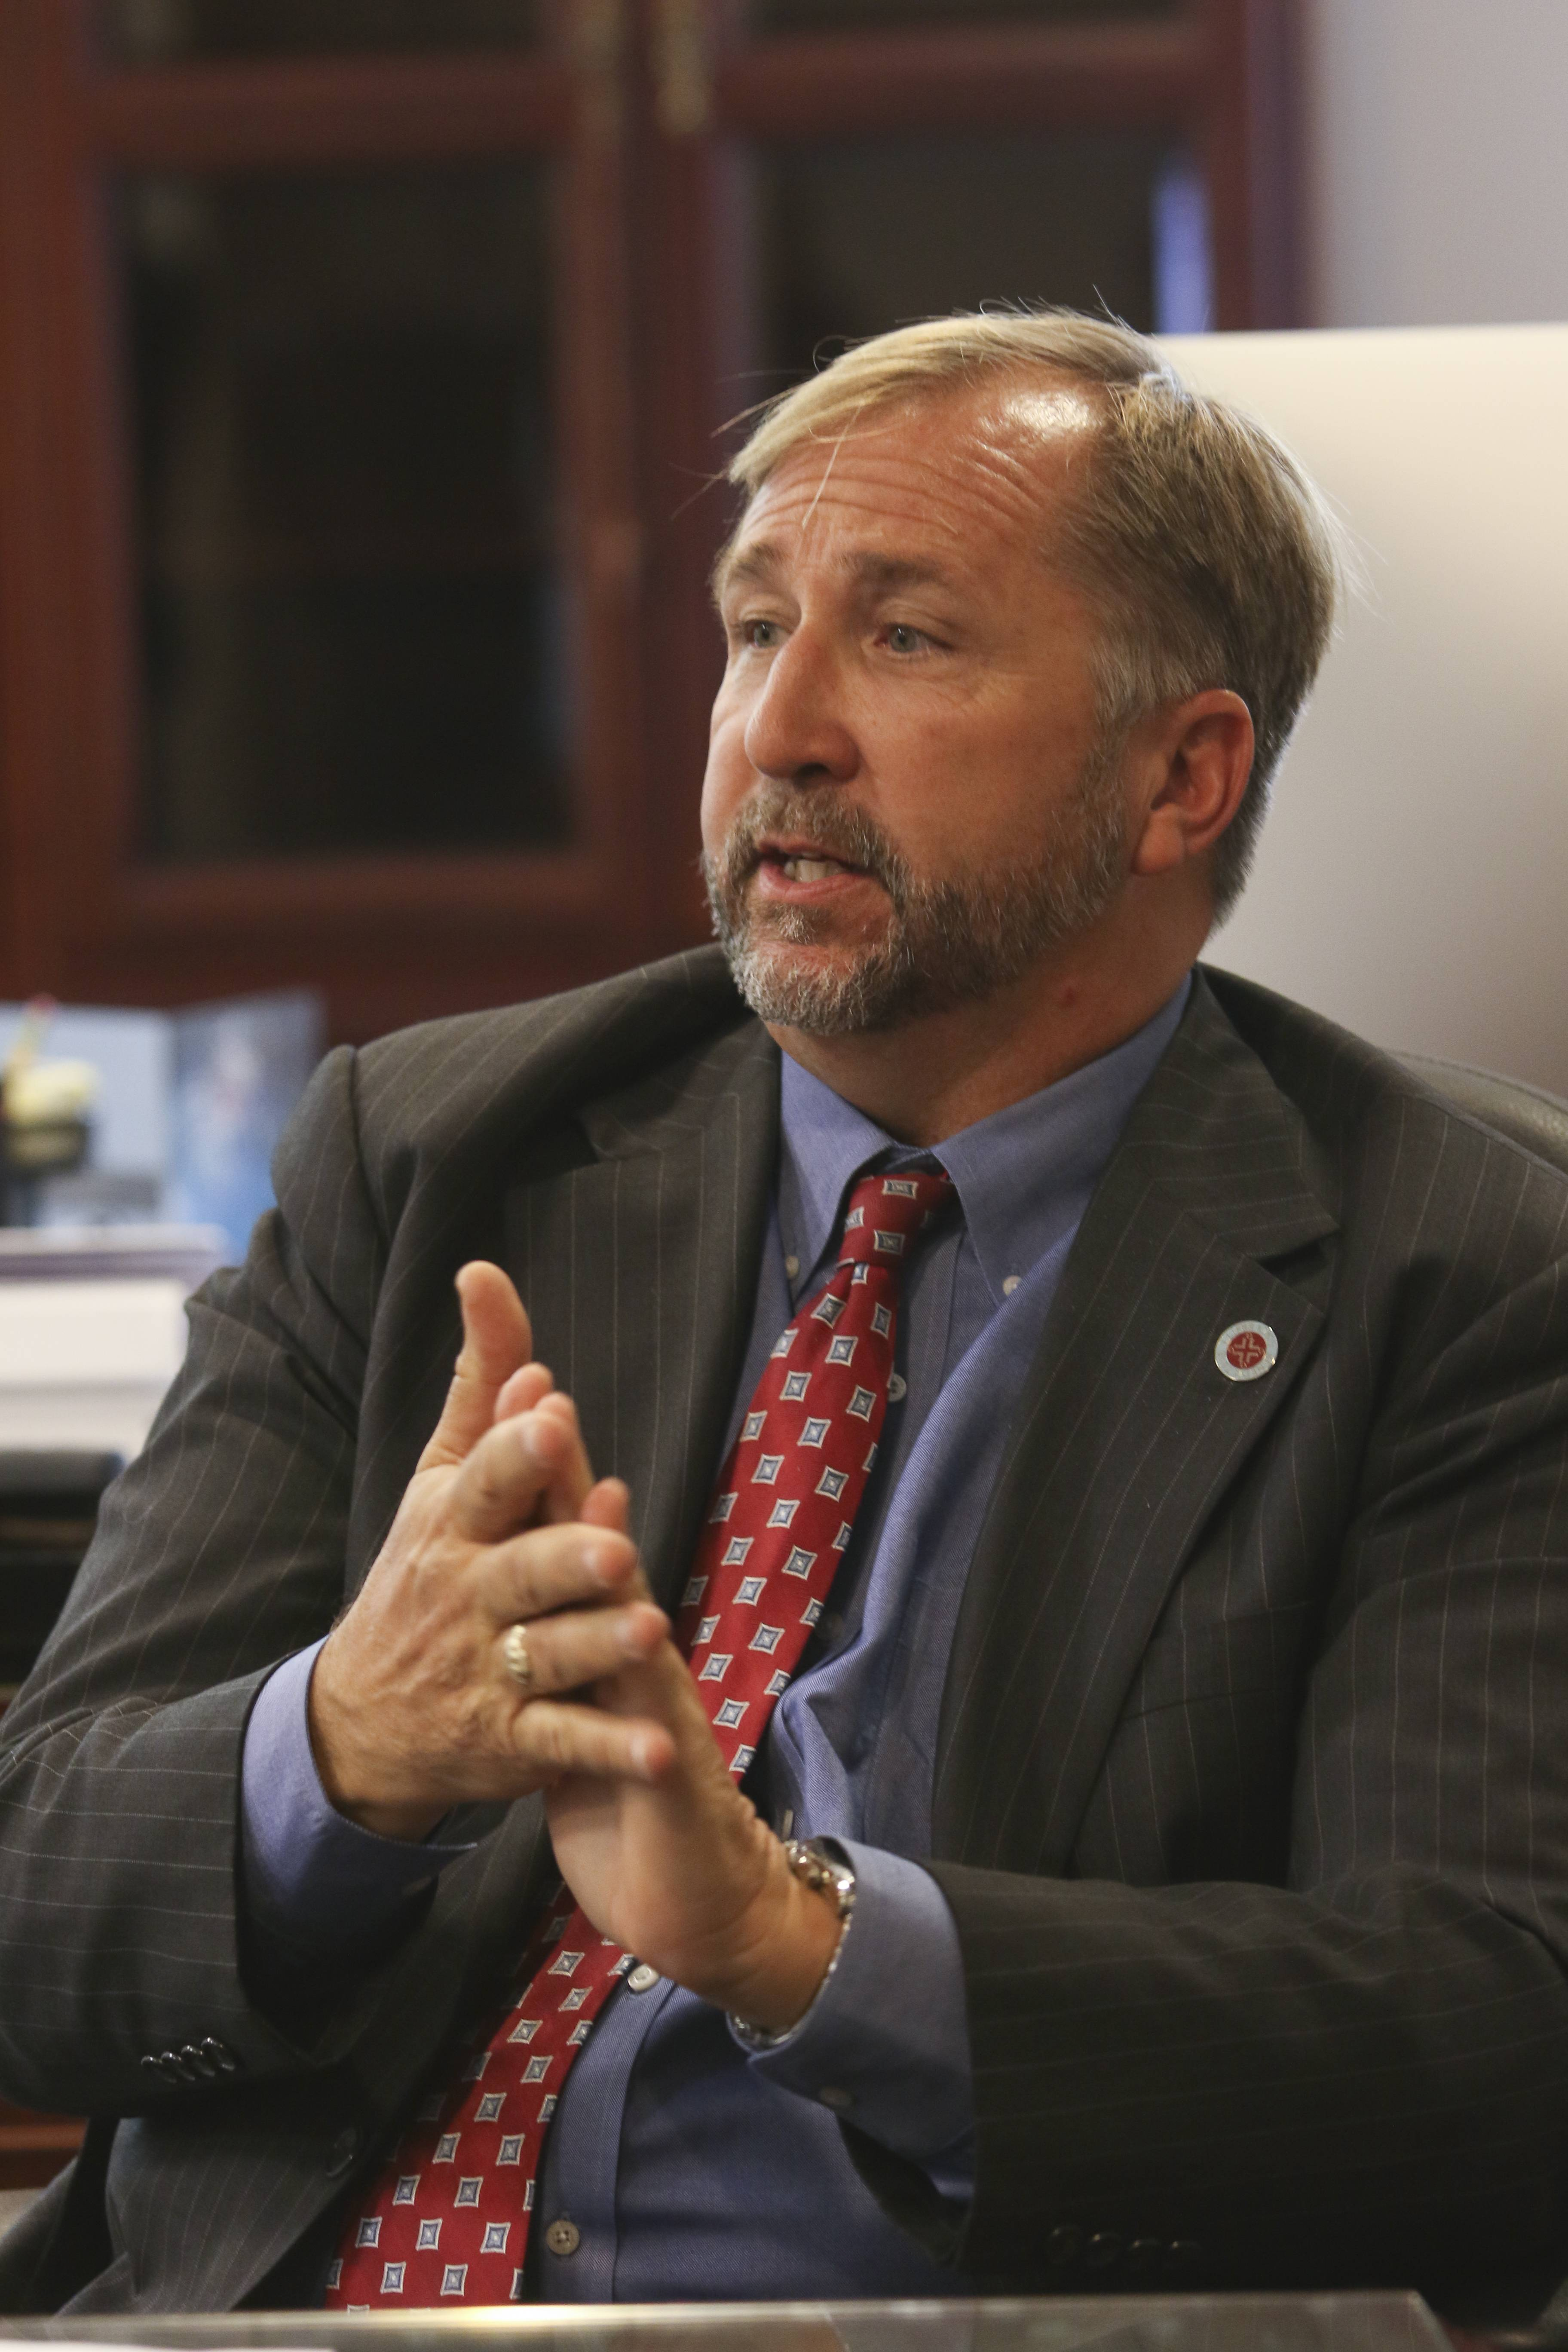 Benedictine University President Michael Brophy has resigned and will relinquish his duties today.